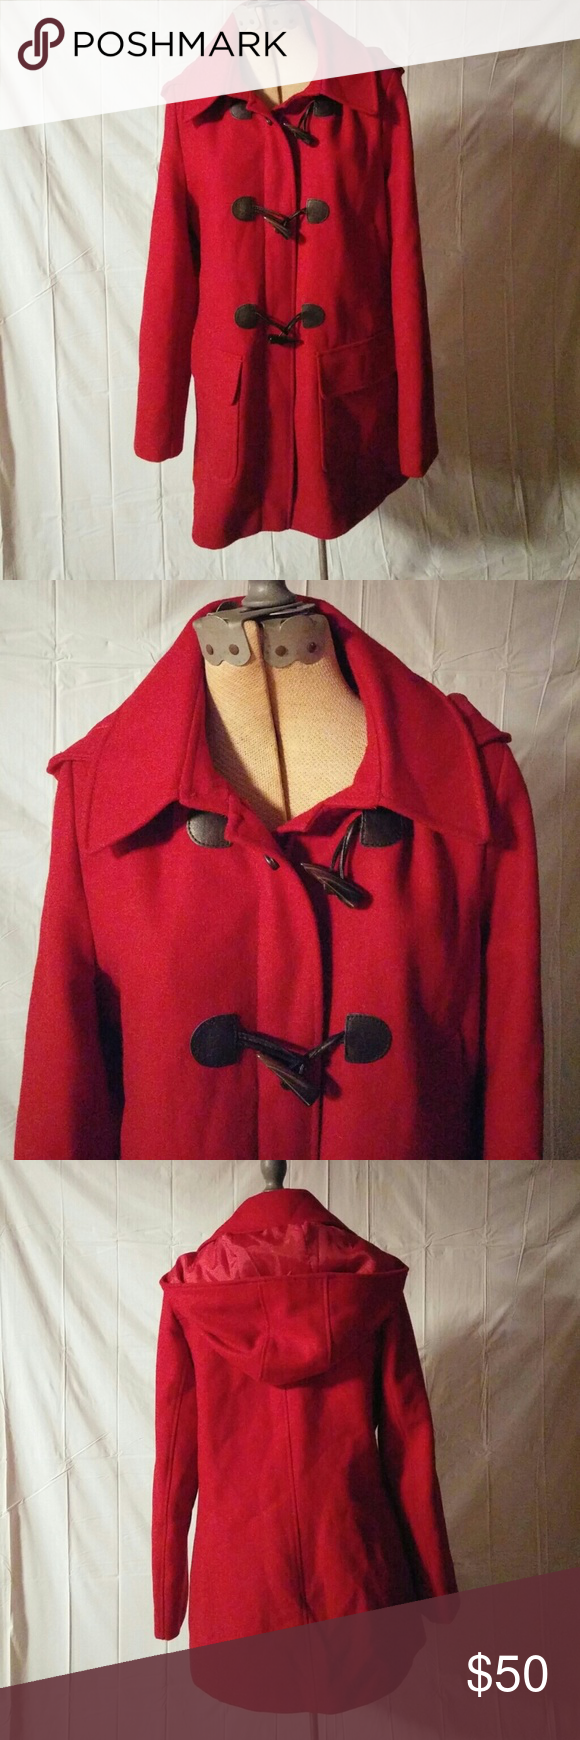 Tommy Hilfiger Red Jacket with Hood Sz M Red jacket